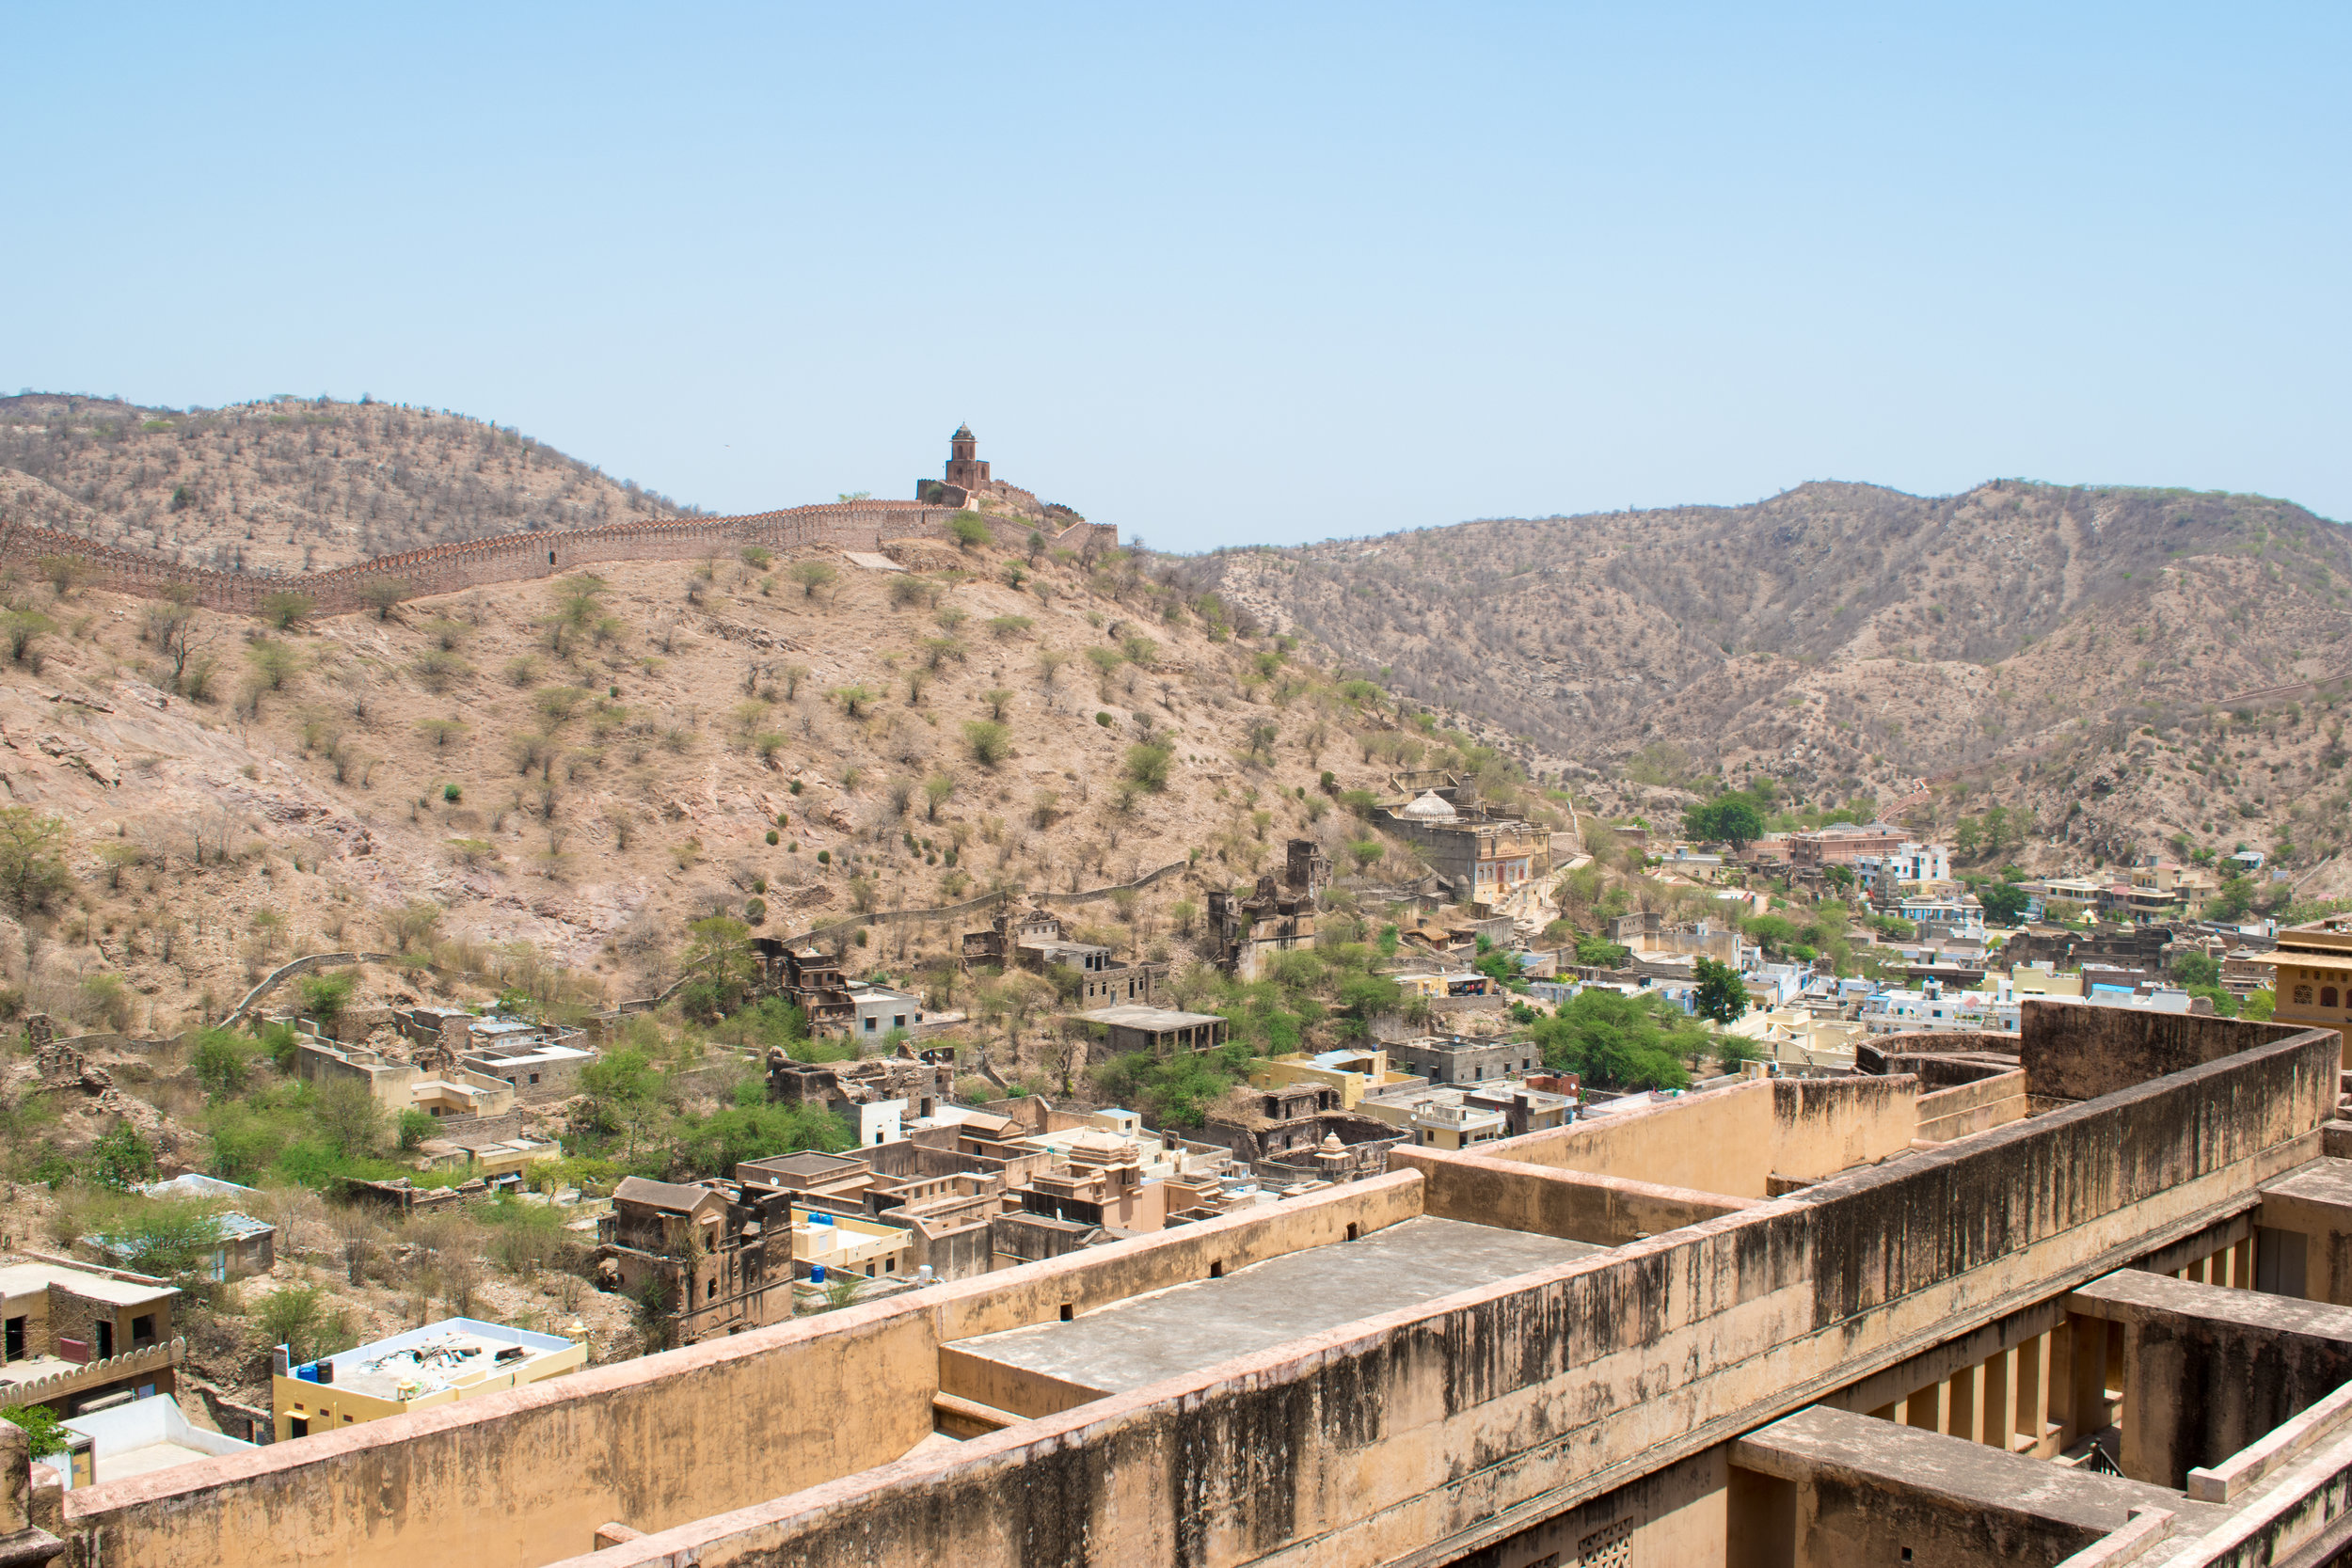 The Amber Fort Walls Snake Across The Hills in Jaipur, India